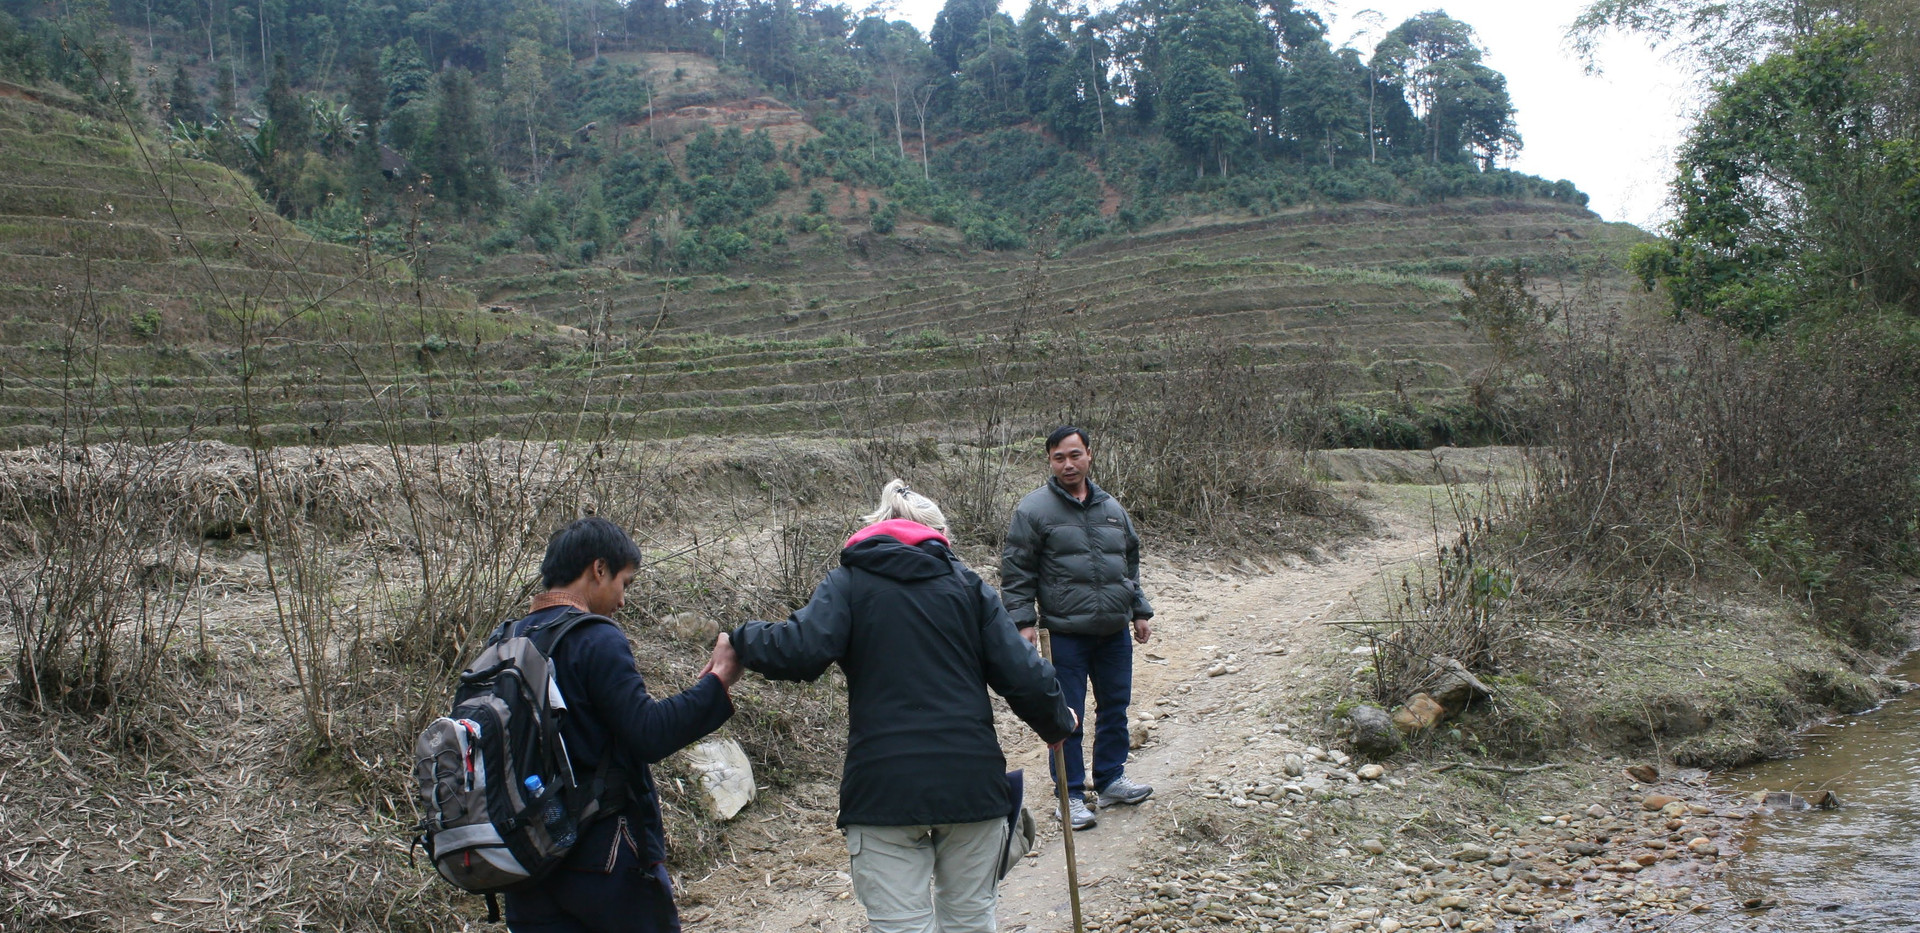 A local people helps travellers while trekking